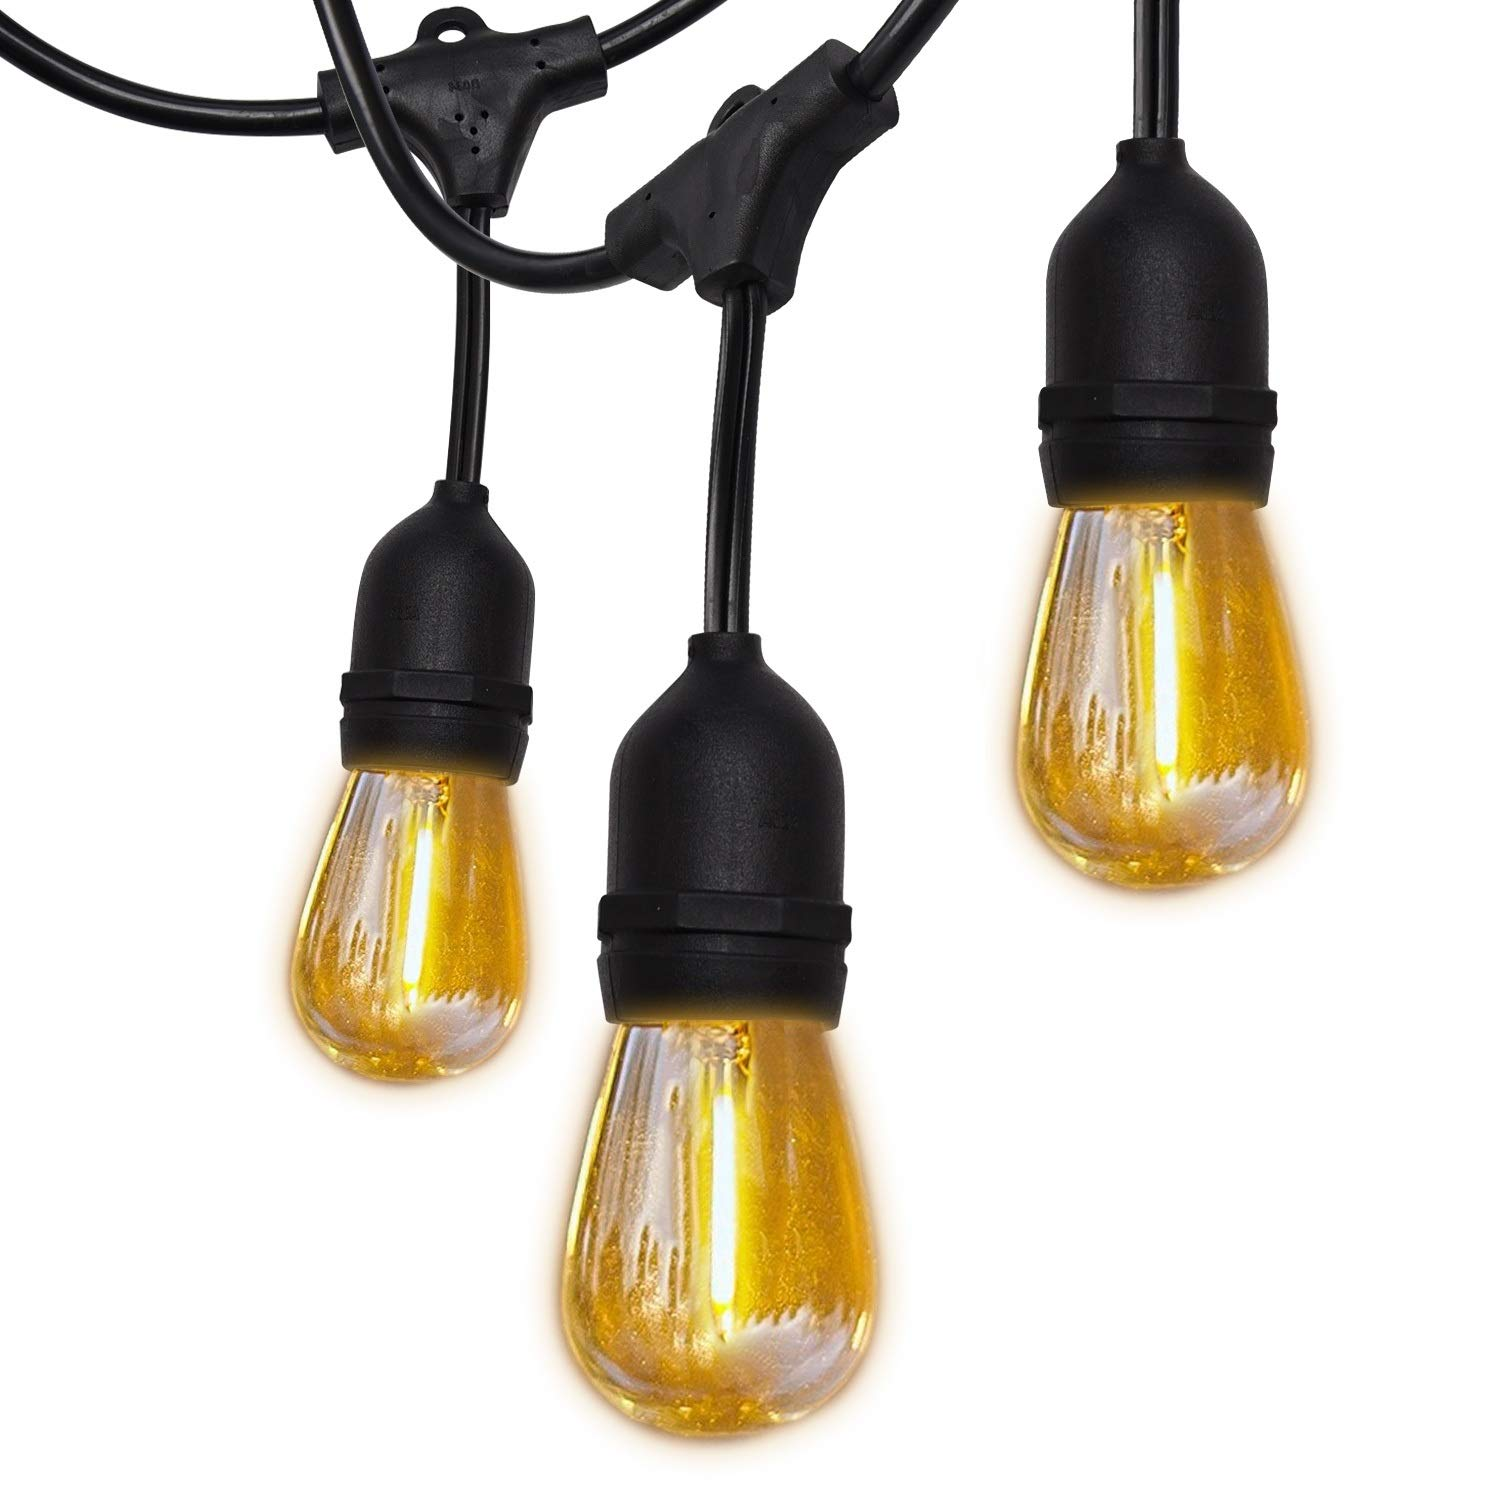 SUPERDANNY 52FT Shatterproof LED Outdoor String Lights UL Approval Commercial Grade Waterproof 26 (2 for Spare) Edison Bulbs 30pcs Zip Ties Weatherproof Plastic Bulb by SUPERDANNY